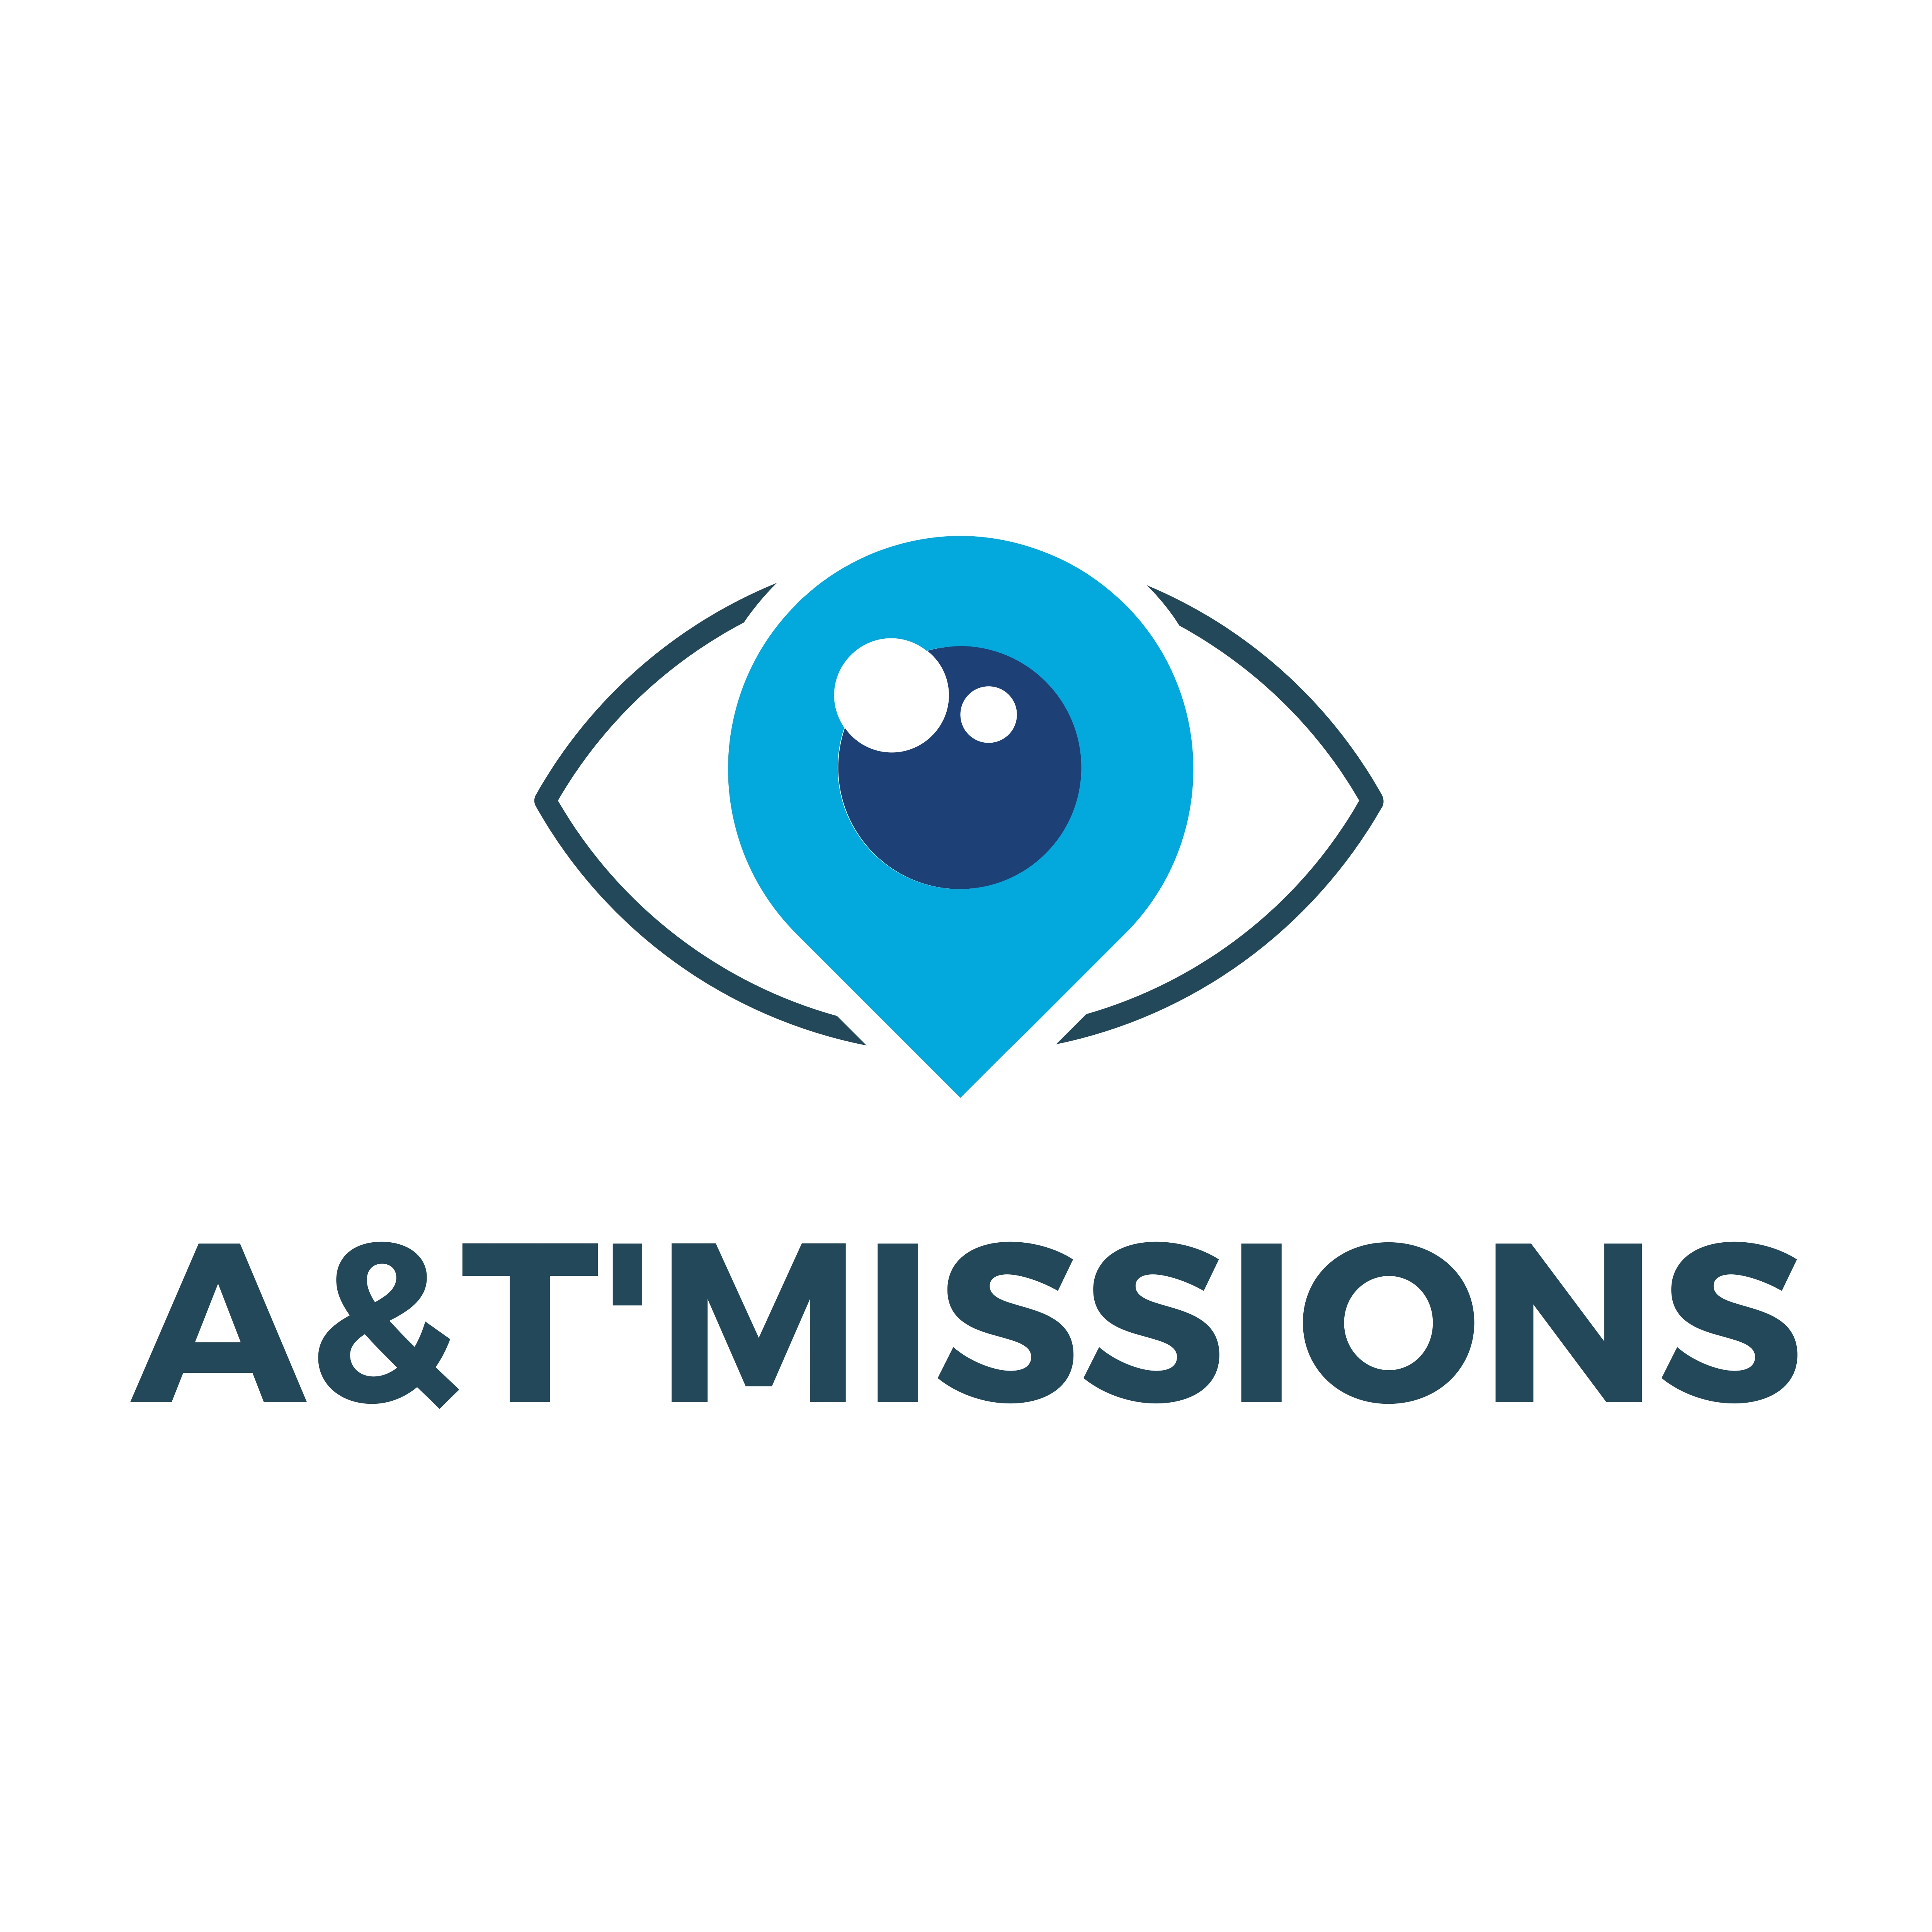 A&T'MISSIONS